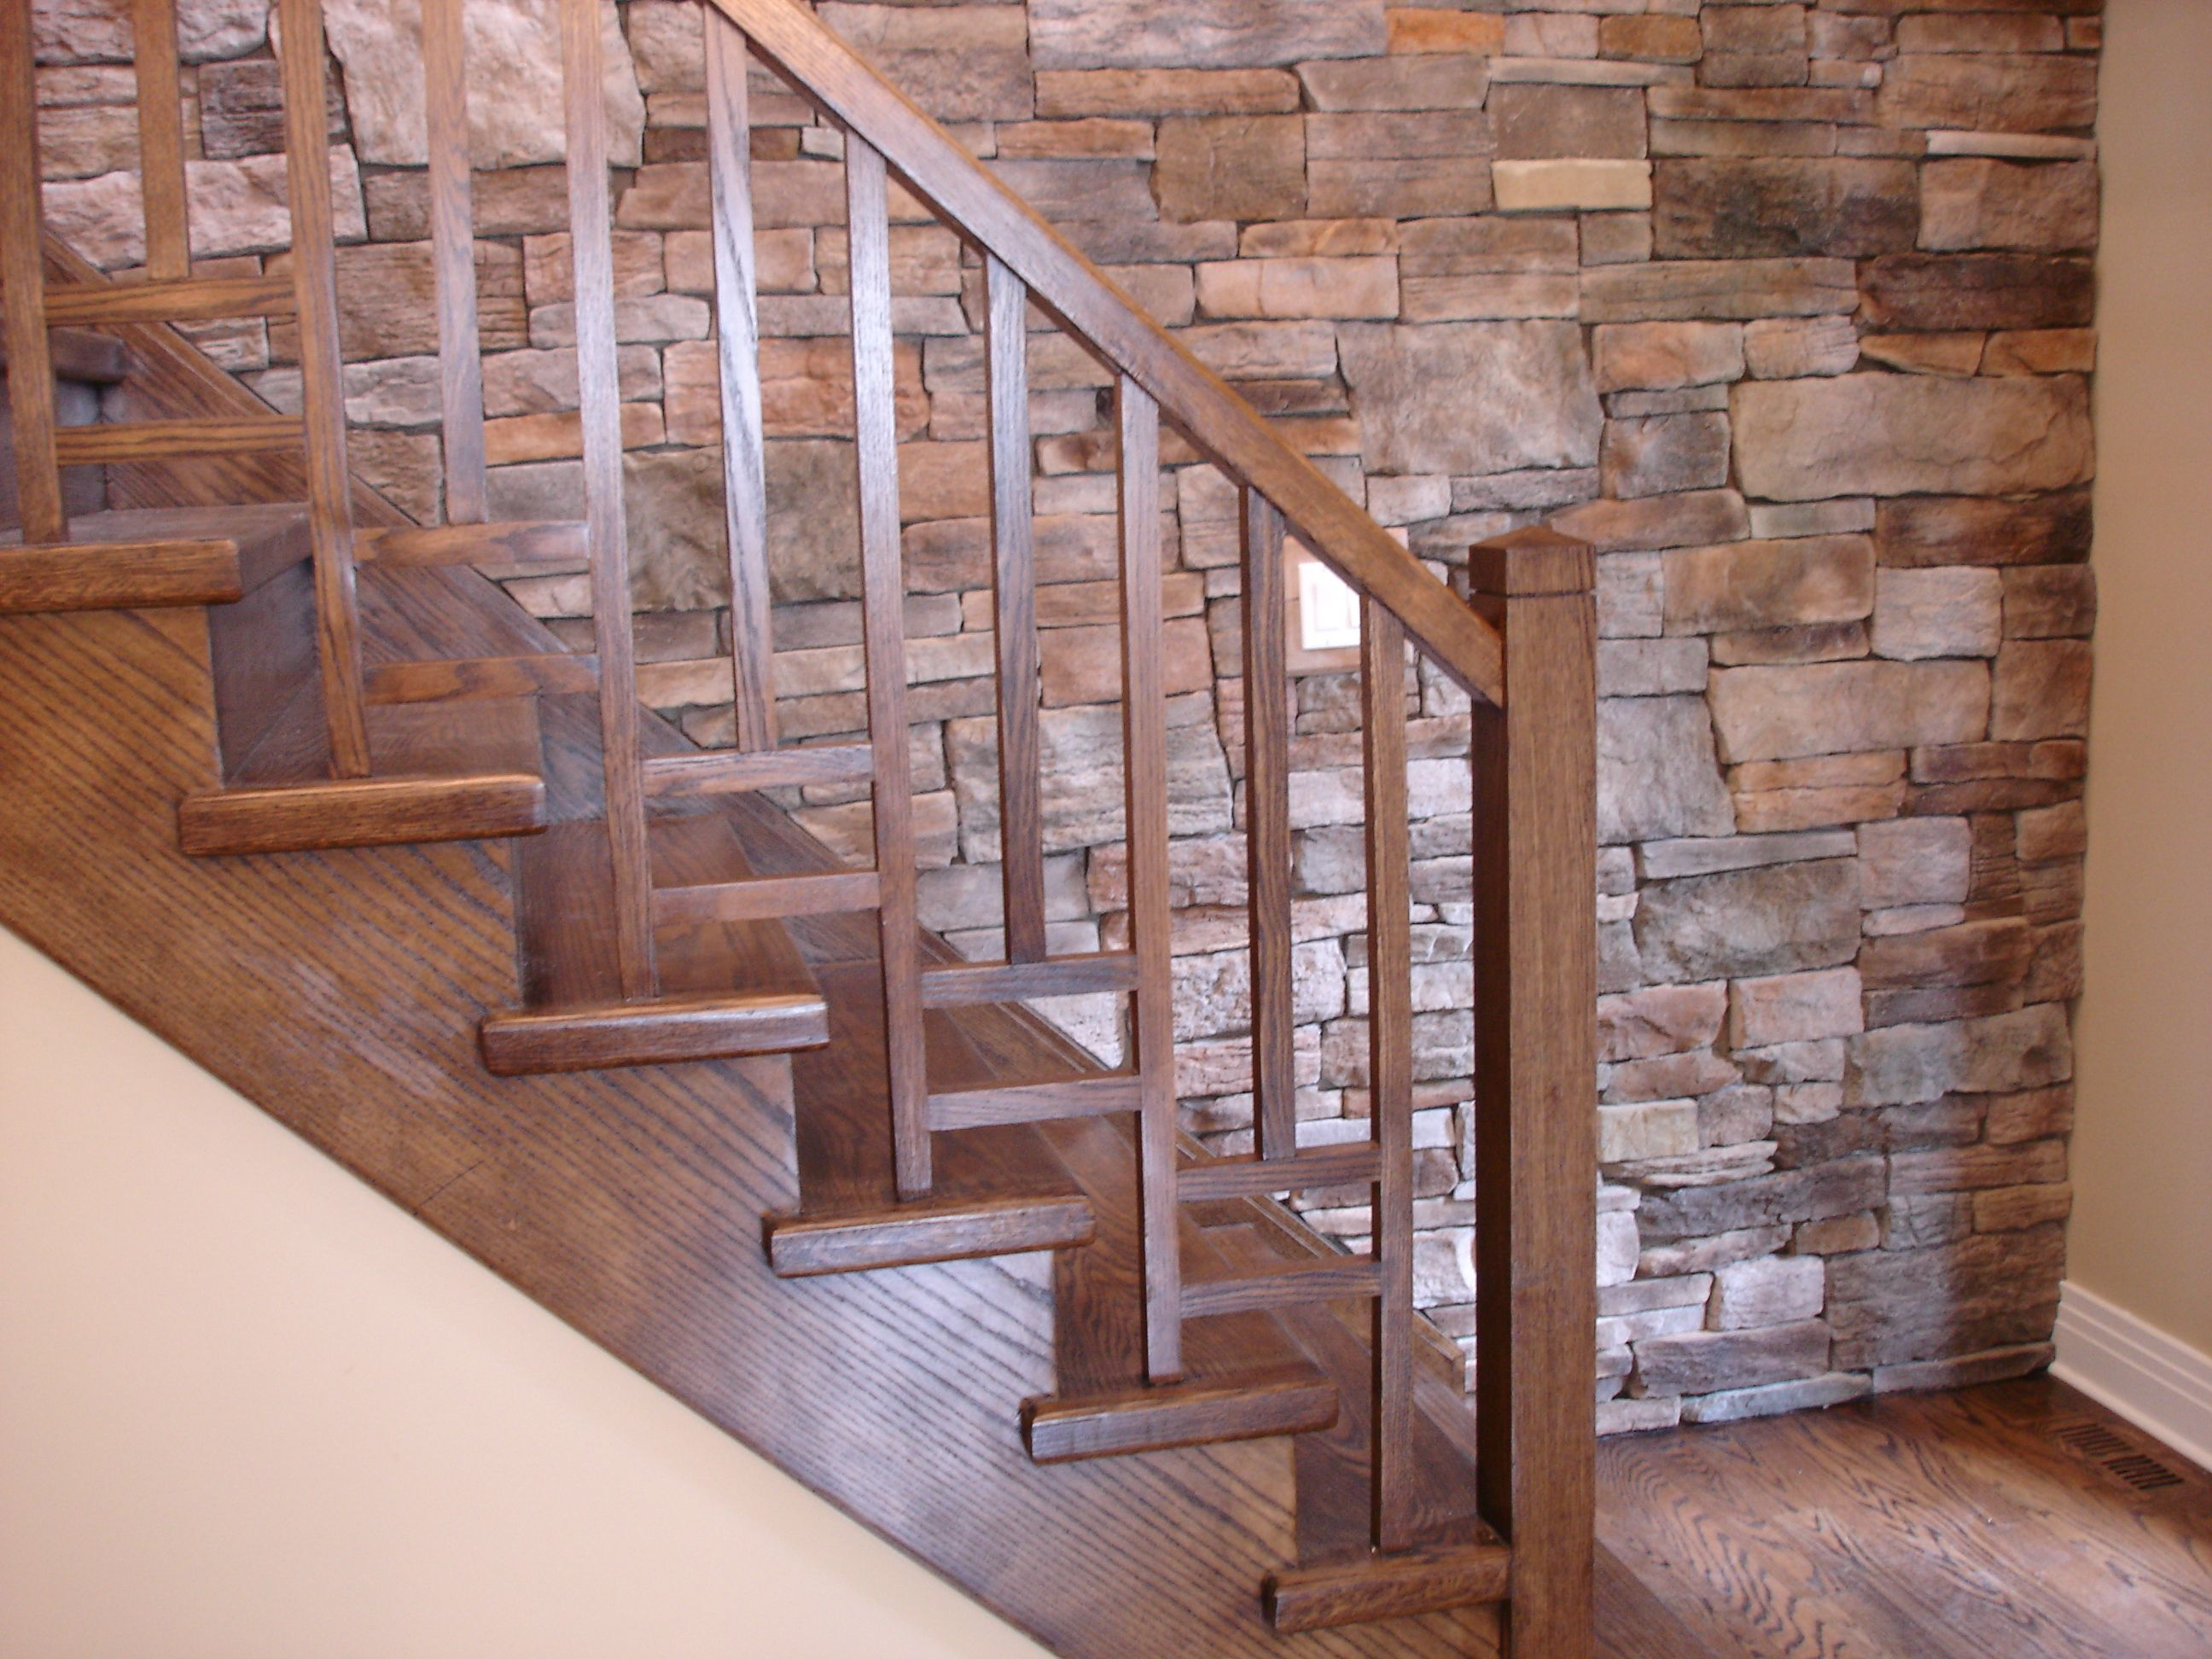 Stair Railing Types Stair Banisters And Railings Ideas Banister Ideas Wooden Staircase Railing Stair Railing Design Interior Stair Railing